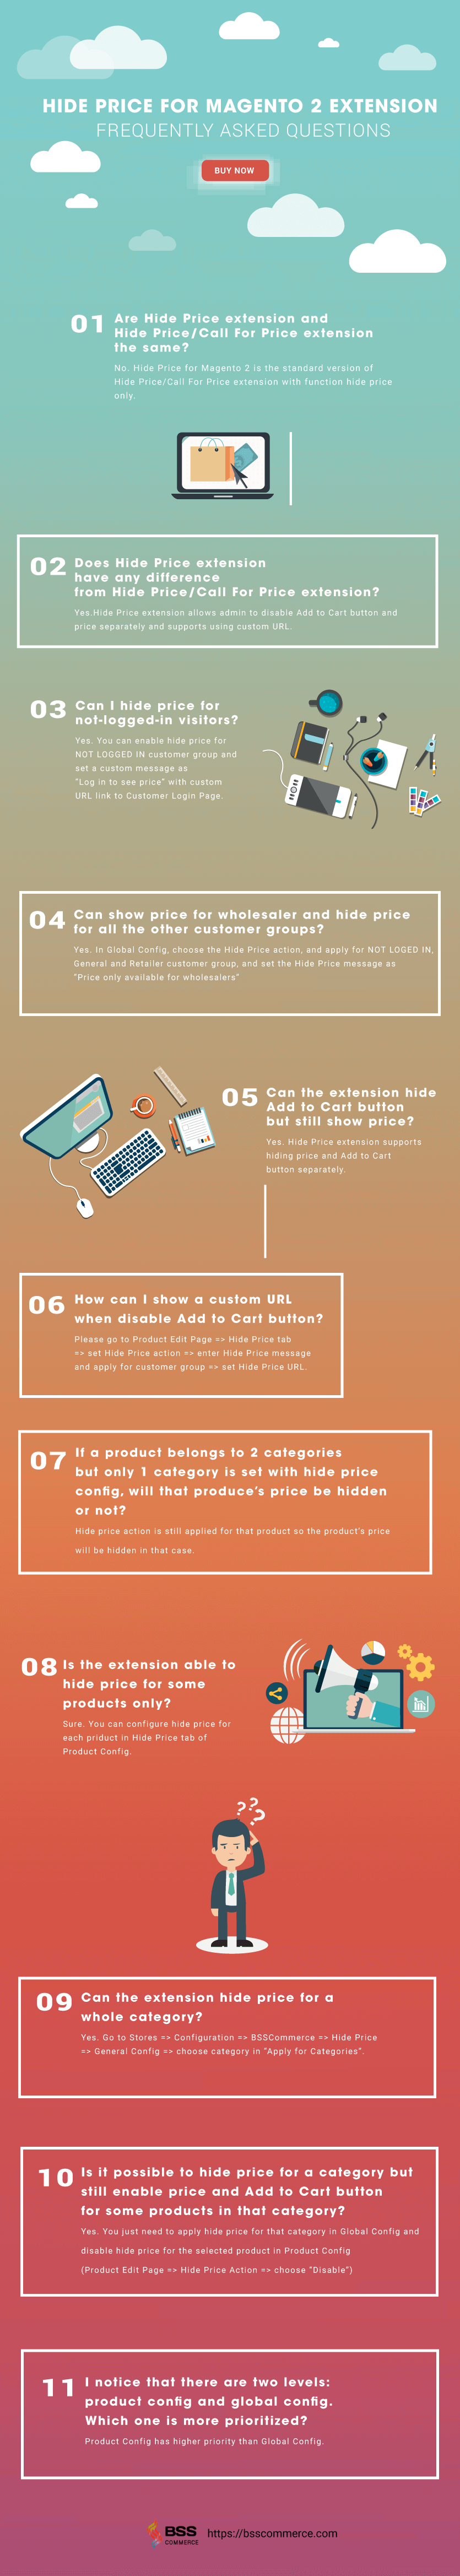 Magento 2 Hide Price Extension FAQs